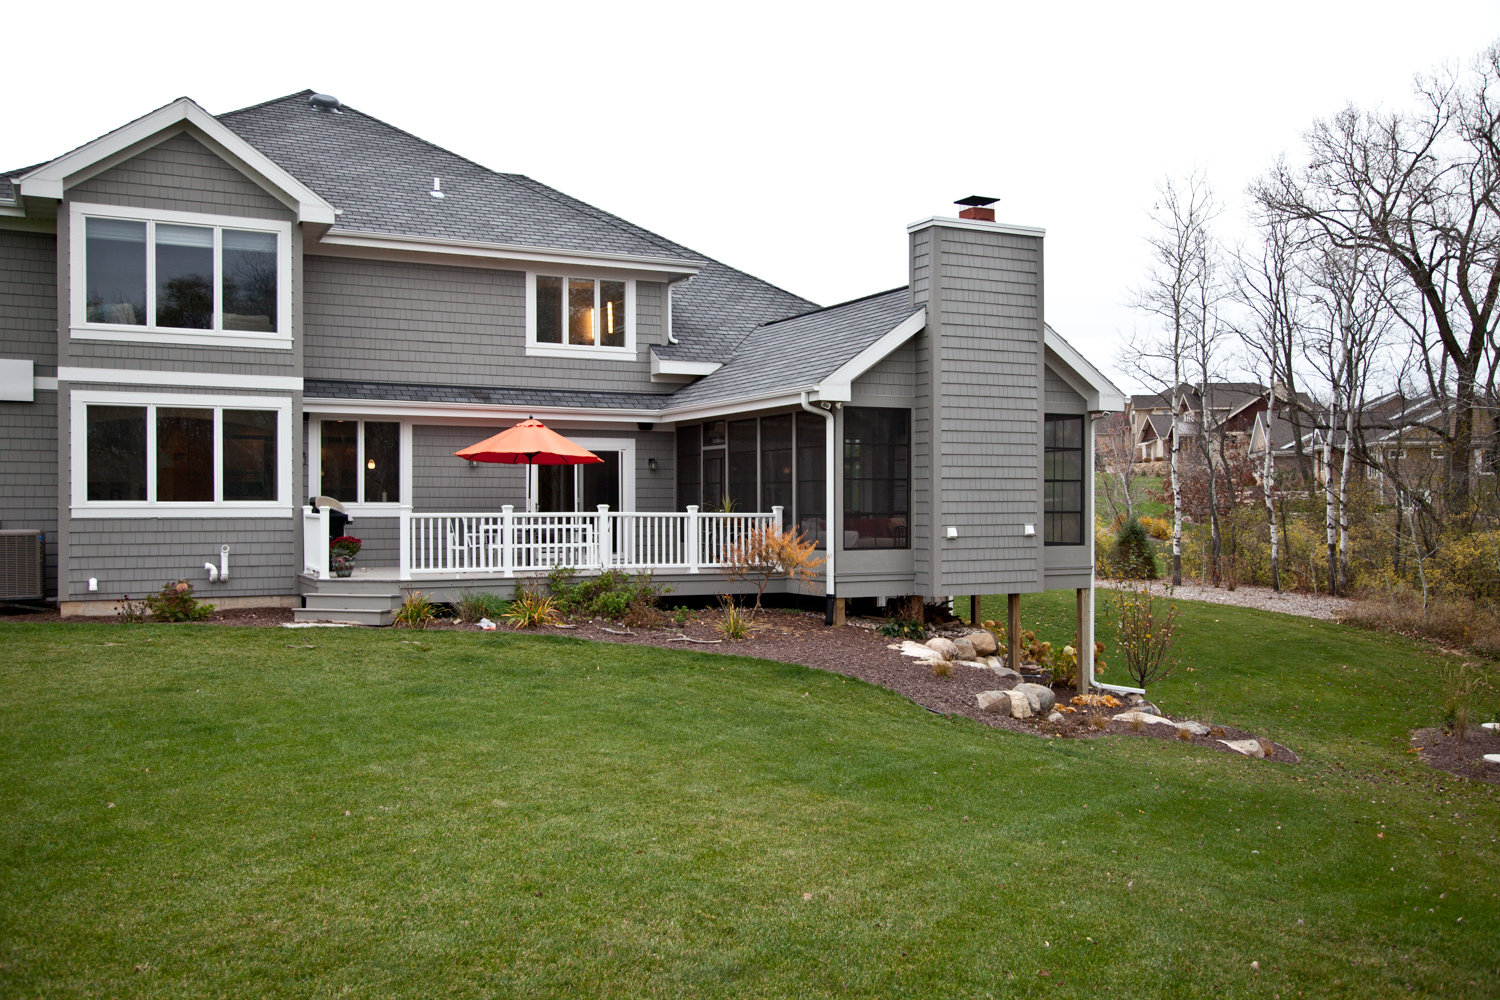 Beautiful country home exterior renovations madison for Exterior house renovation